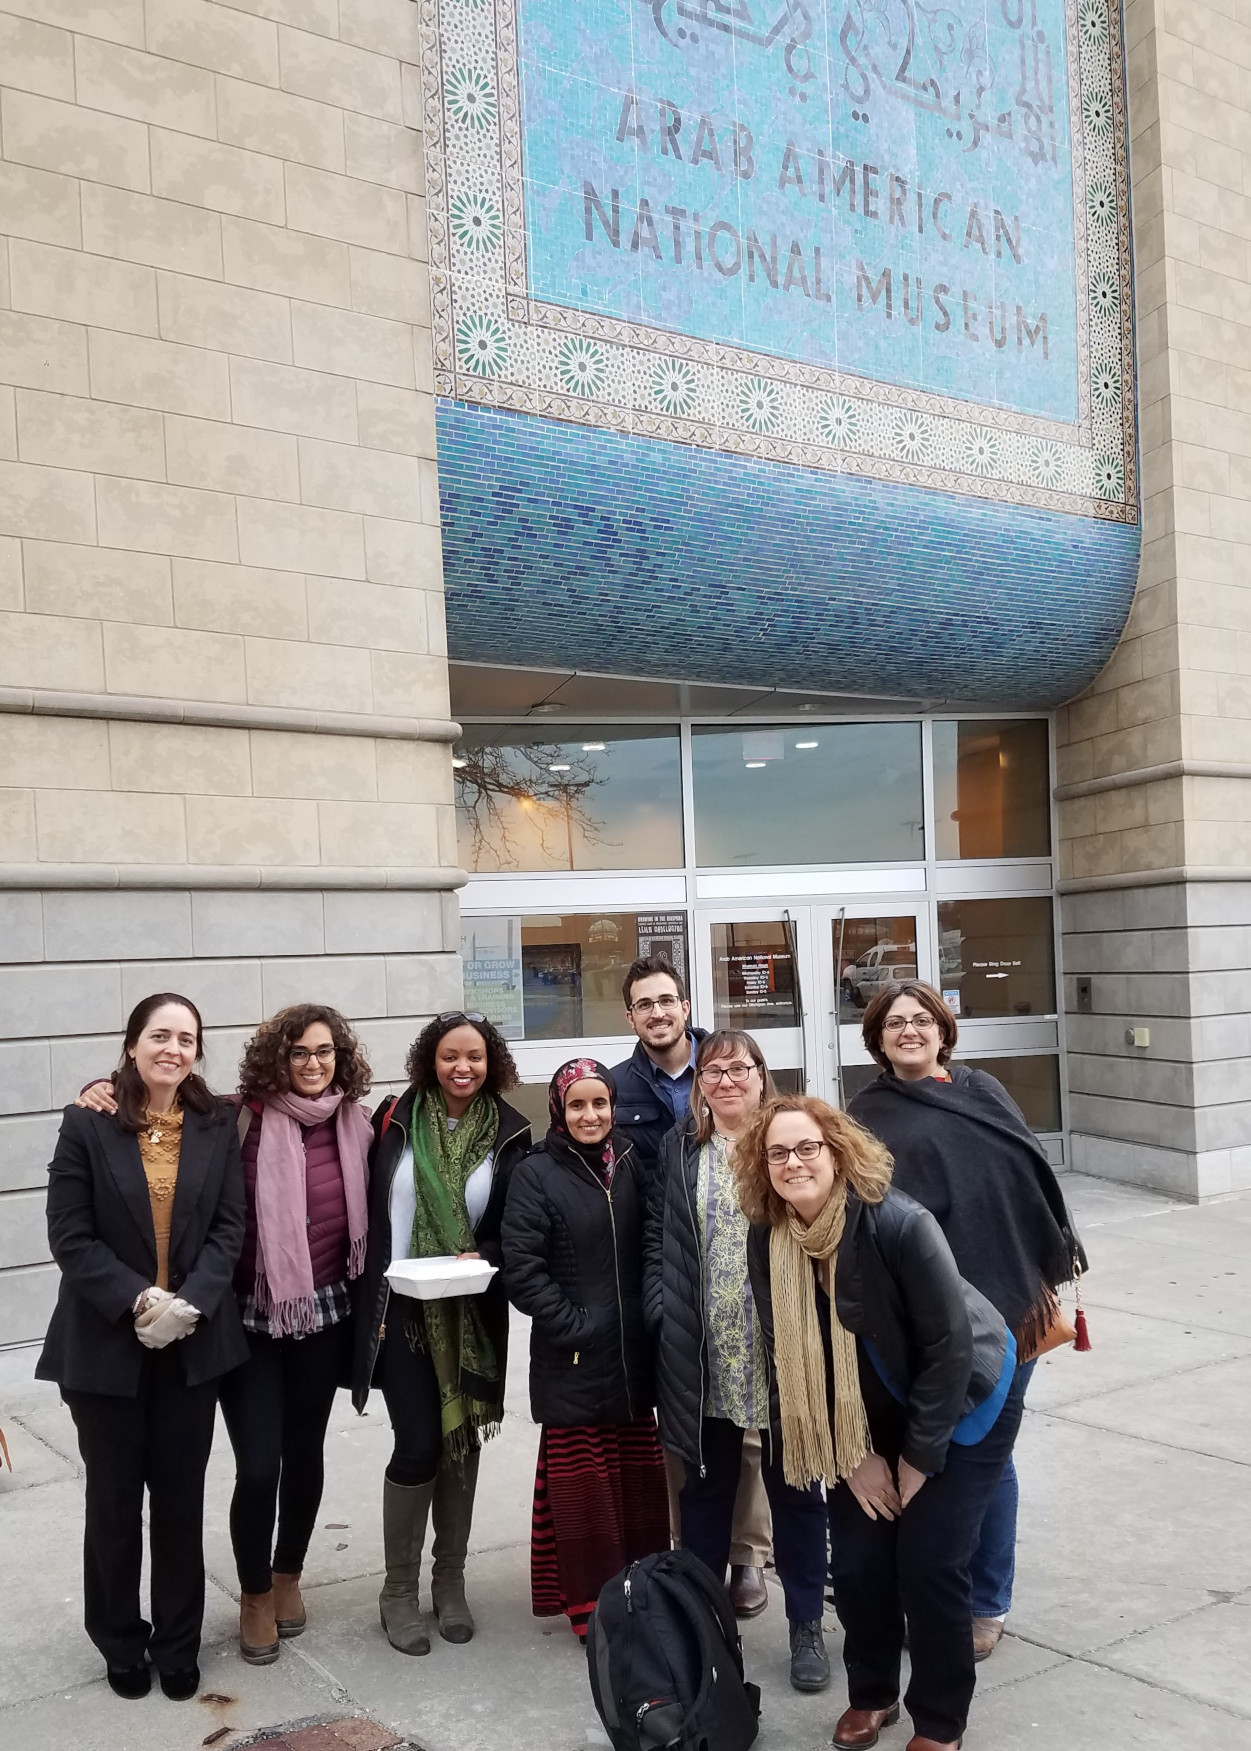 Scholars convene to participate in community discussions about developing a new exhibit for the museum. Image courtesy Arab American National Museum.